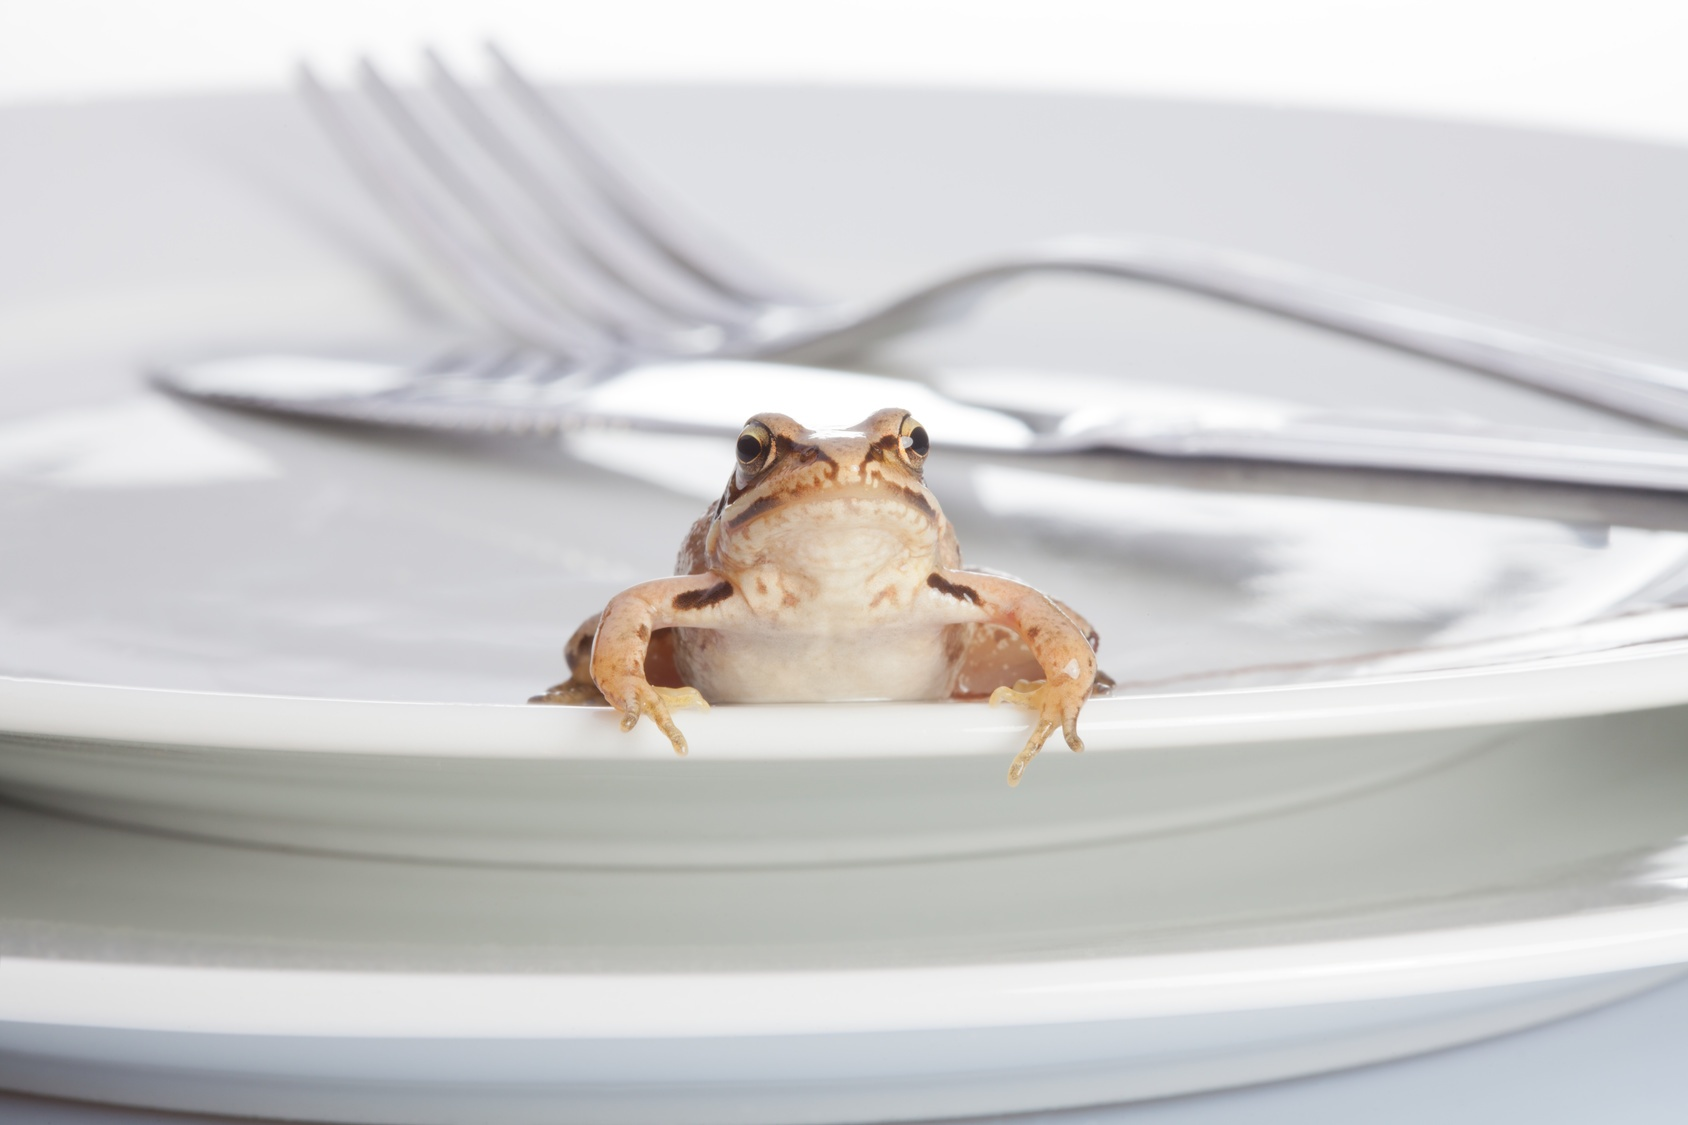 Frog For Breakfast